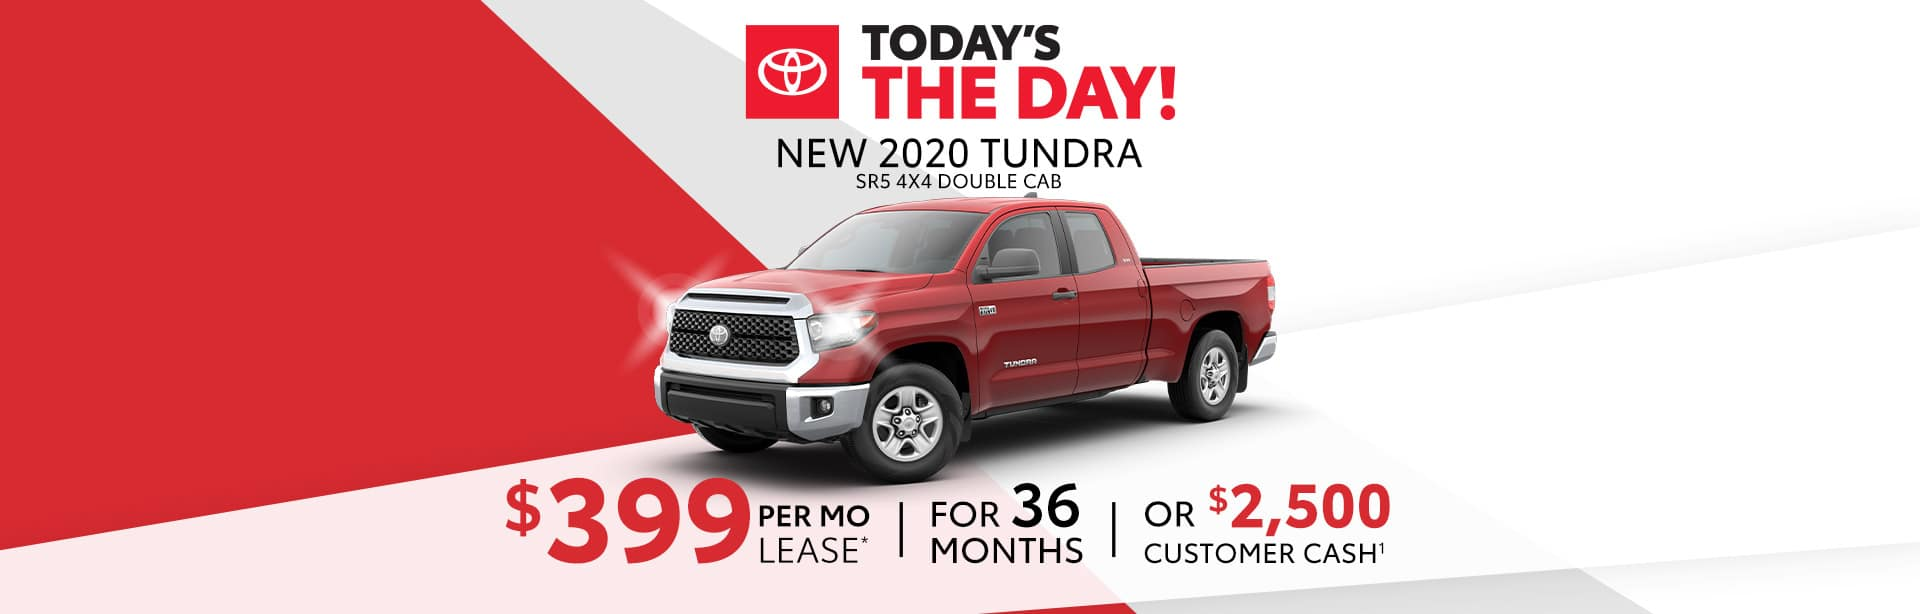 Best deal on a new Tundra near Indianapolis, Indiana